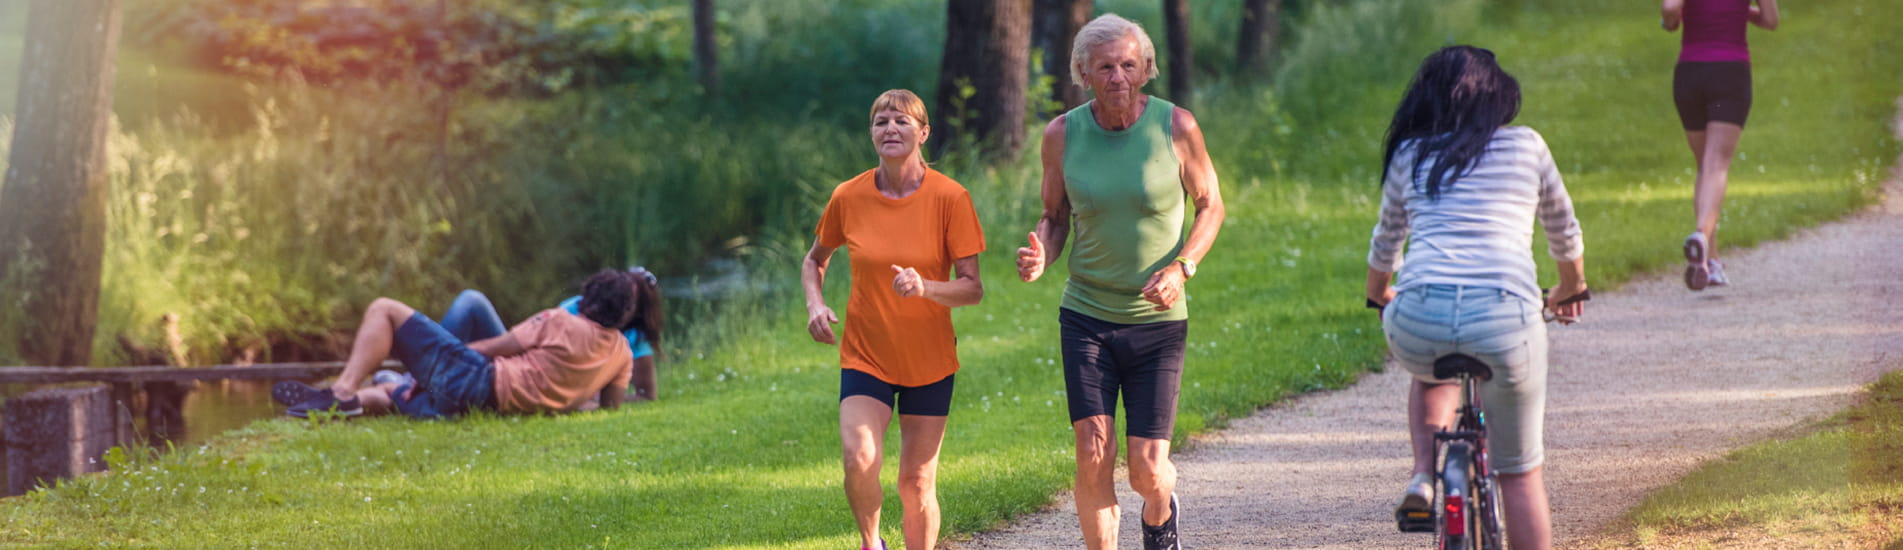 Two seniors running on a trail in a busy park.